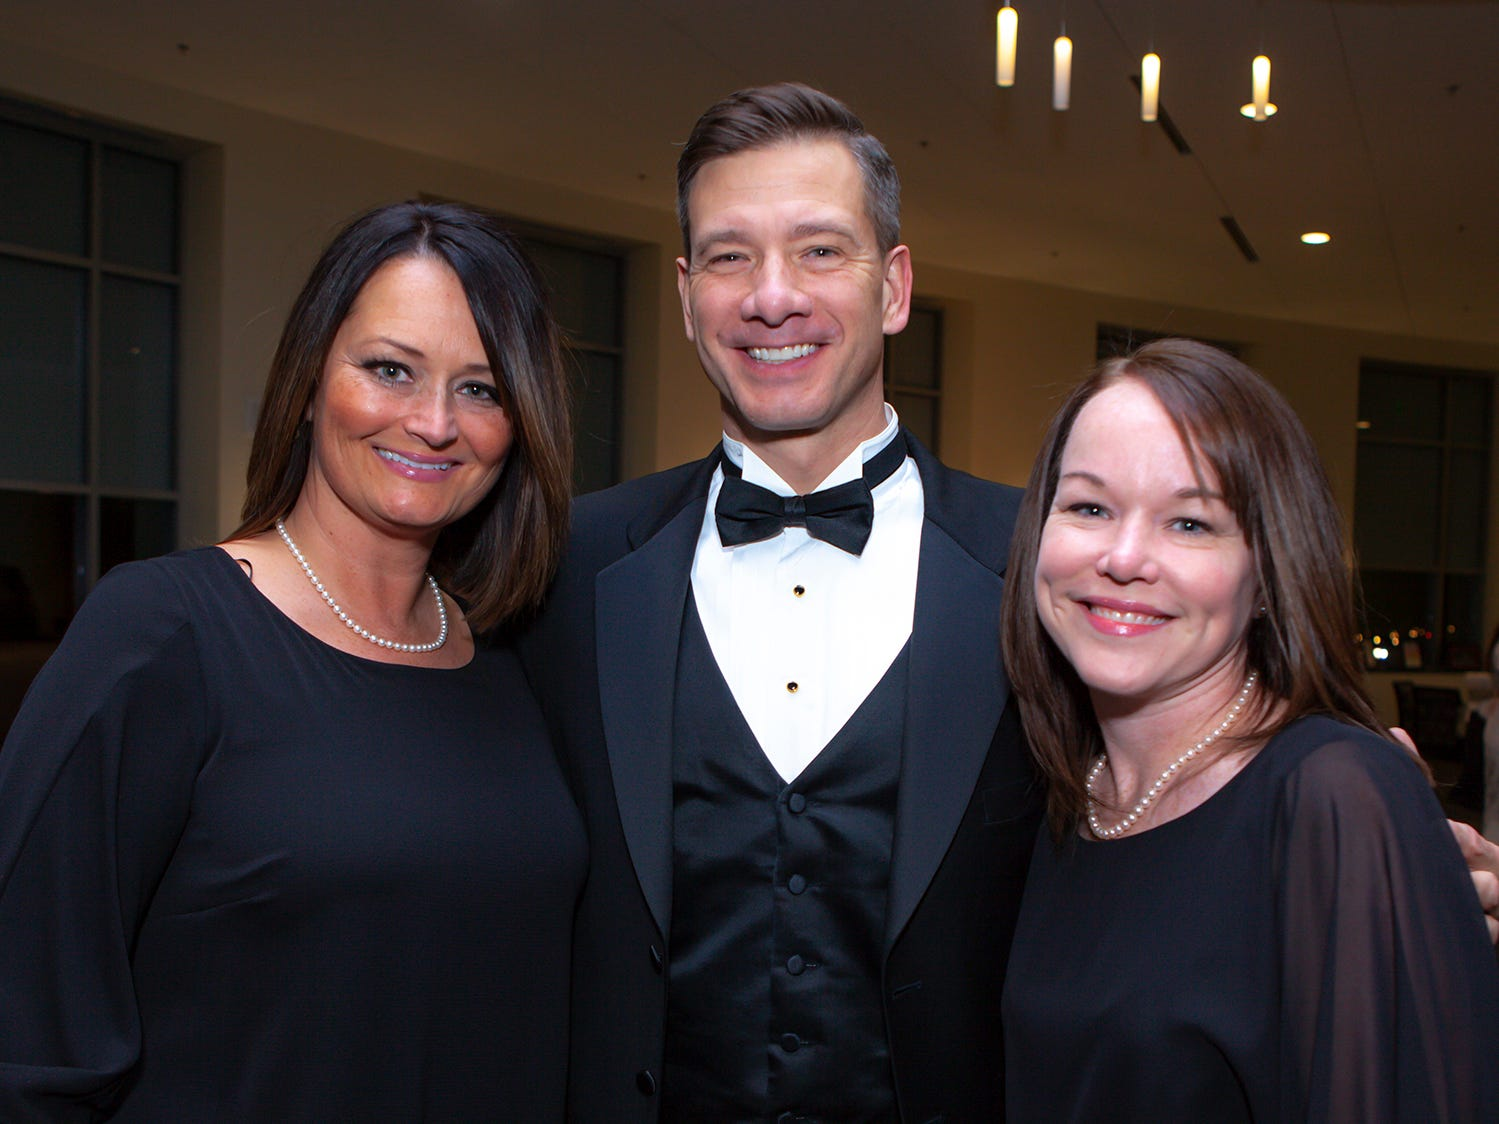 Cynthia and Ronnie Martin with Rita Myers at the 2019 Excellence in Education Gala, hosted by the City Schools Foundation on Friday, Jan. 25, 2019 at Stones River Country Club in Murfreesboro